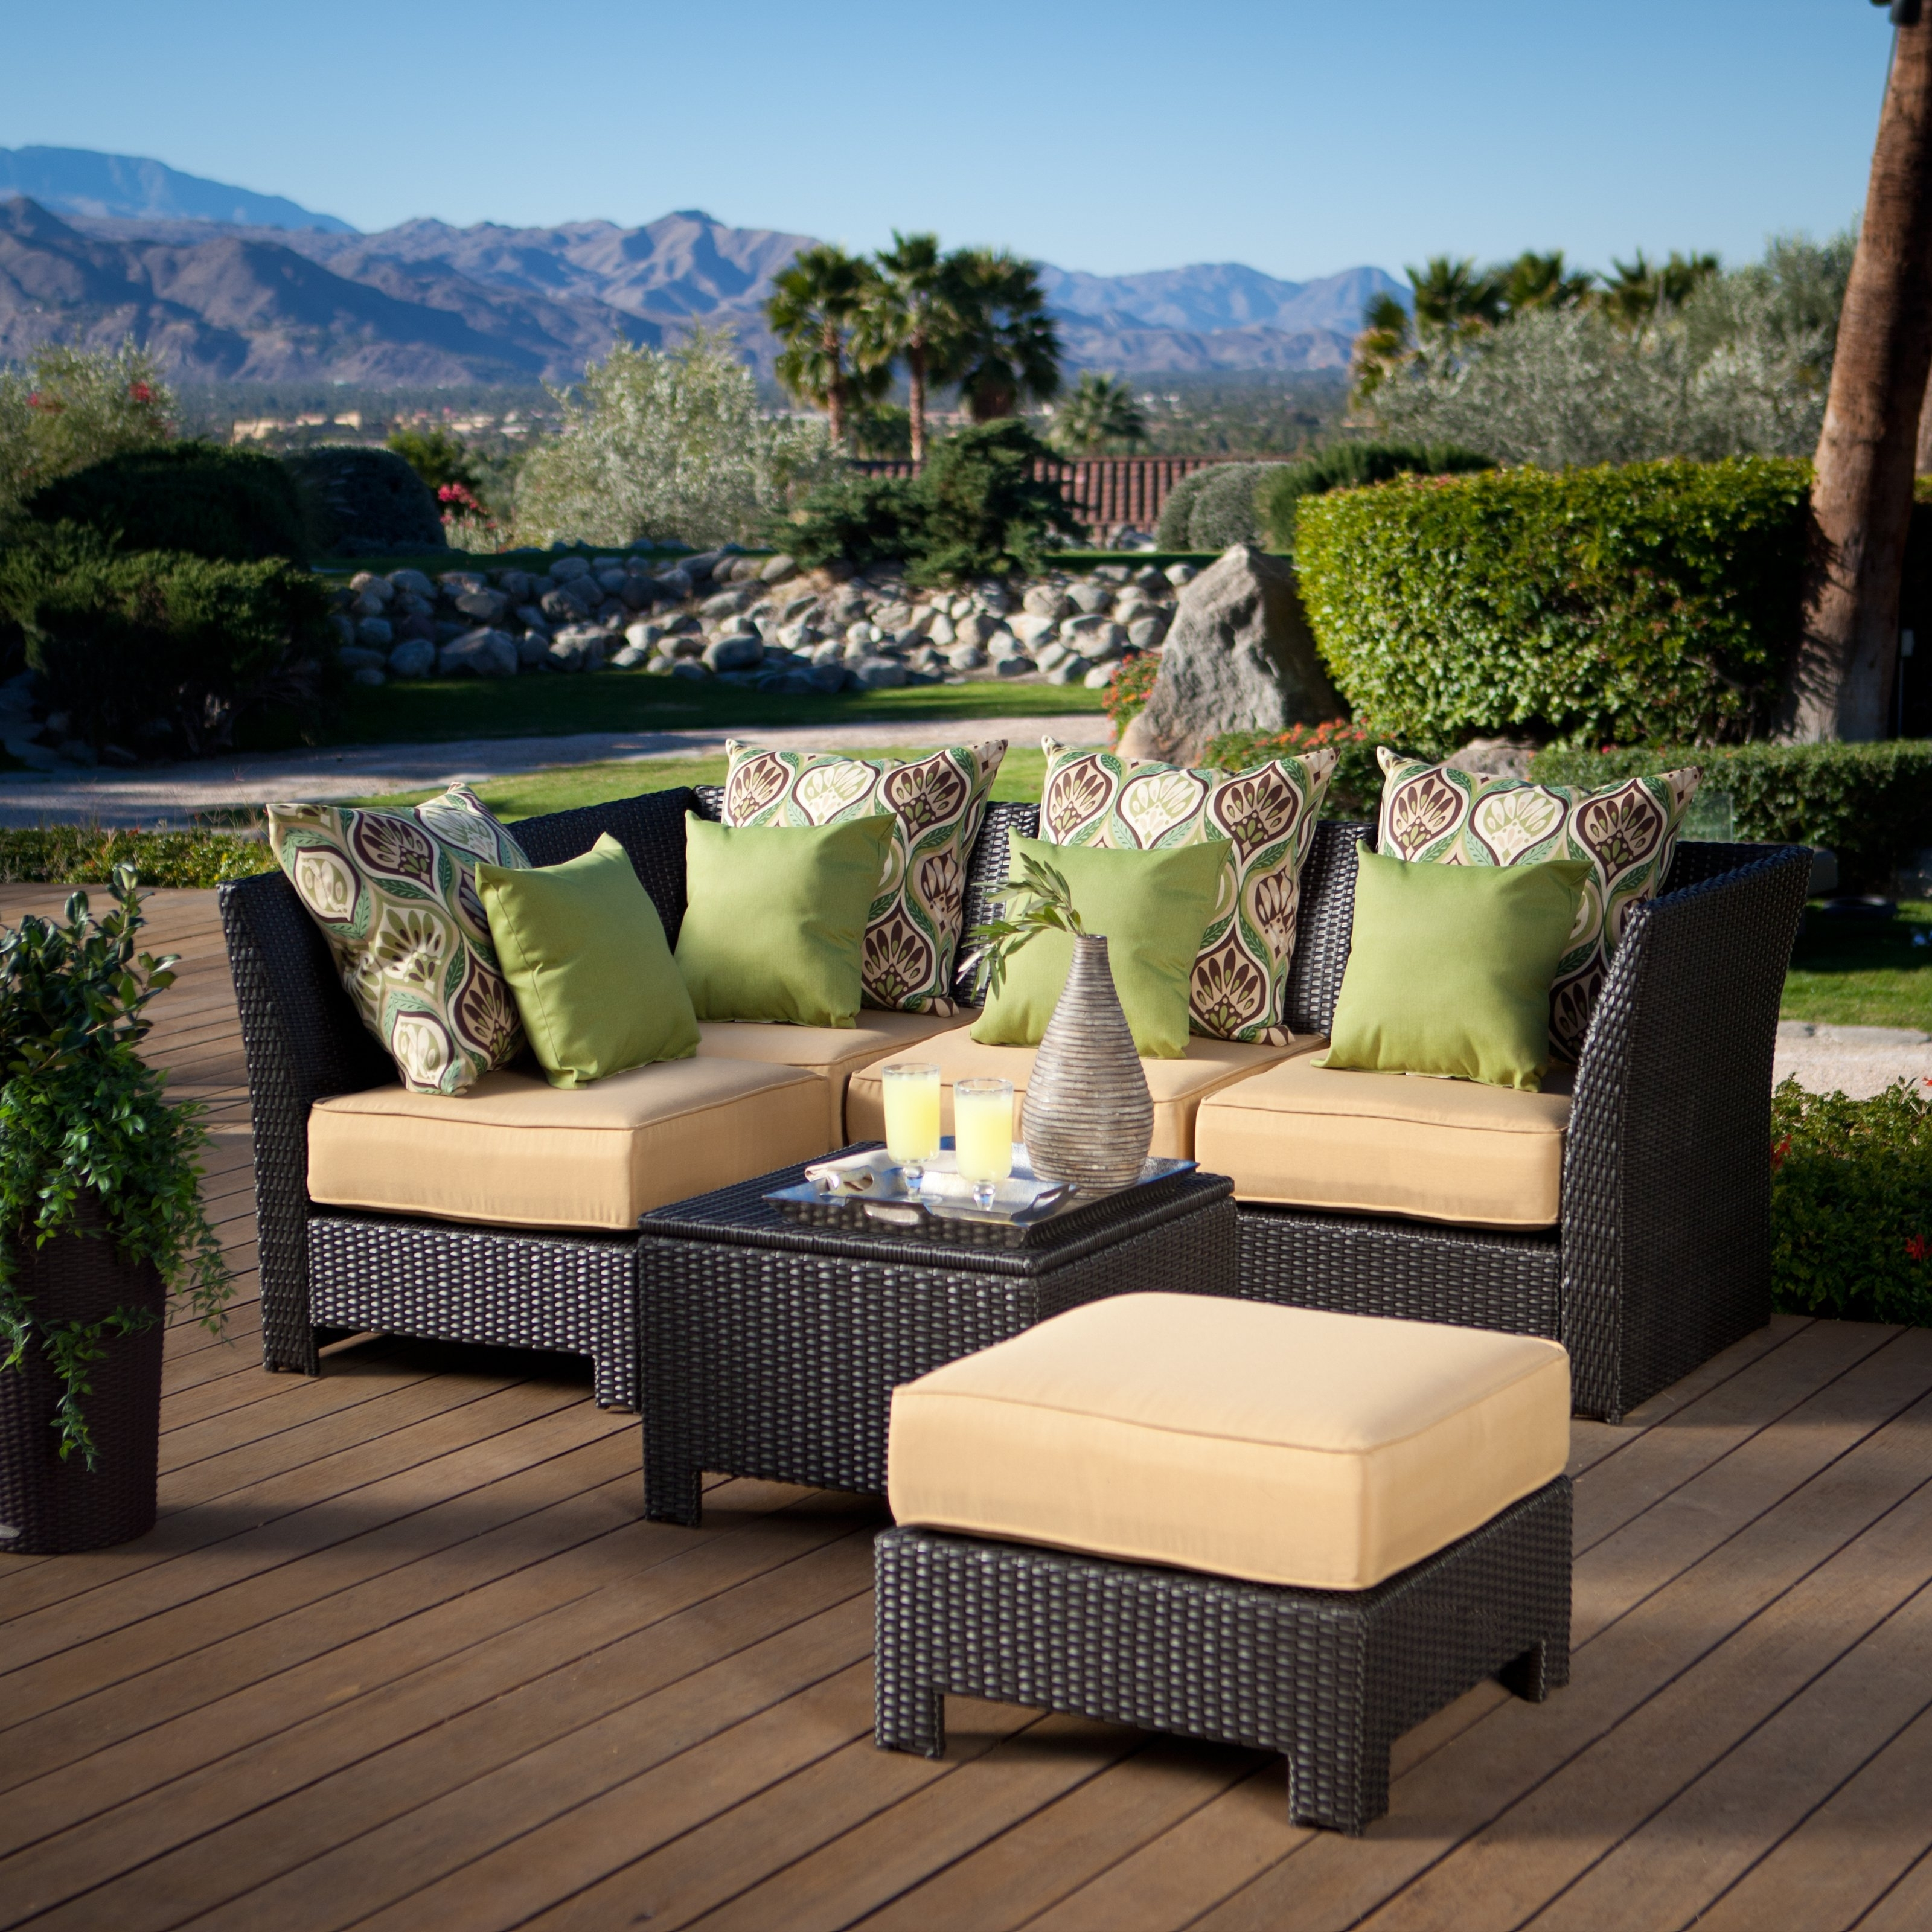 Patio Conversation Sets Under $400 Regarding Fashionable Patio Conversation Sets Wicker » Design And Ideas (View 11 of 15)